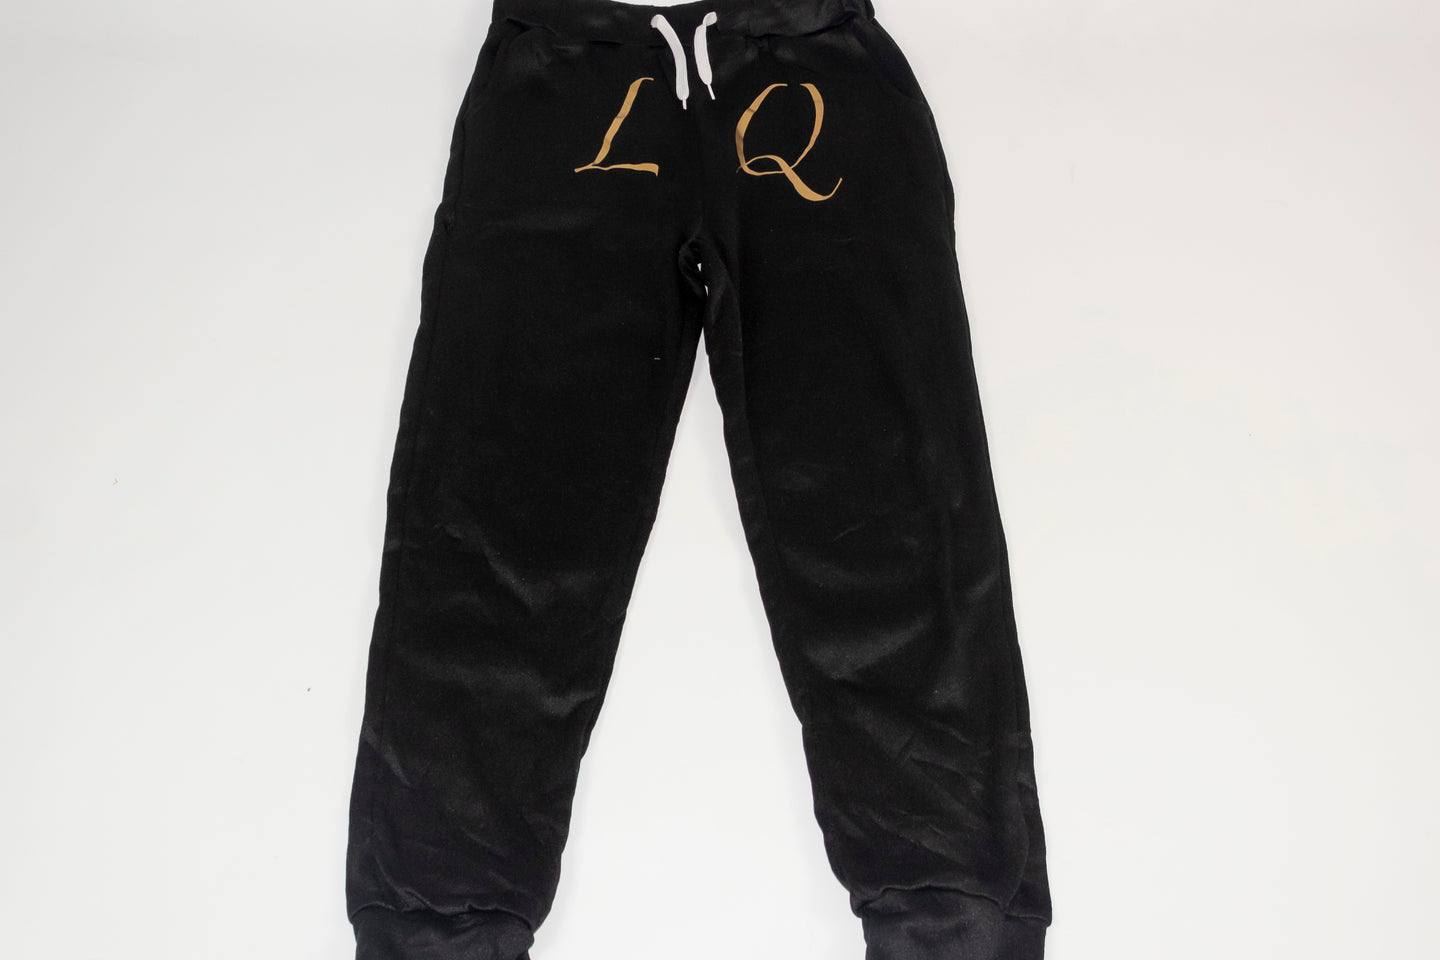 LittQueen Sweatpants